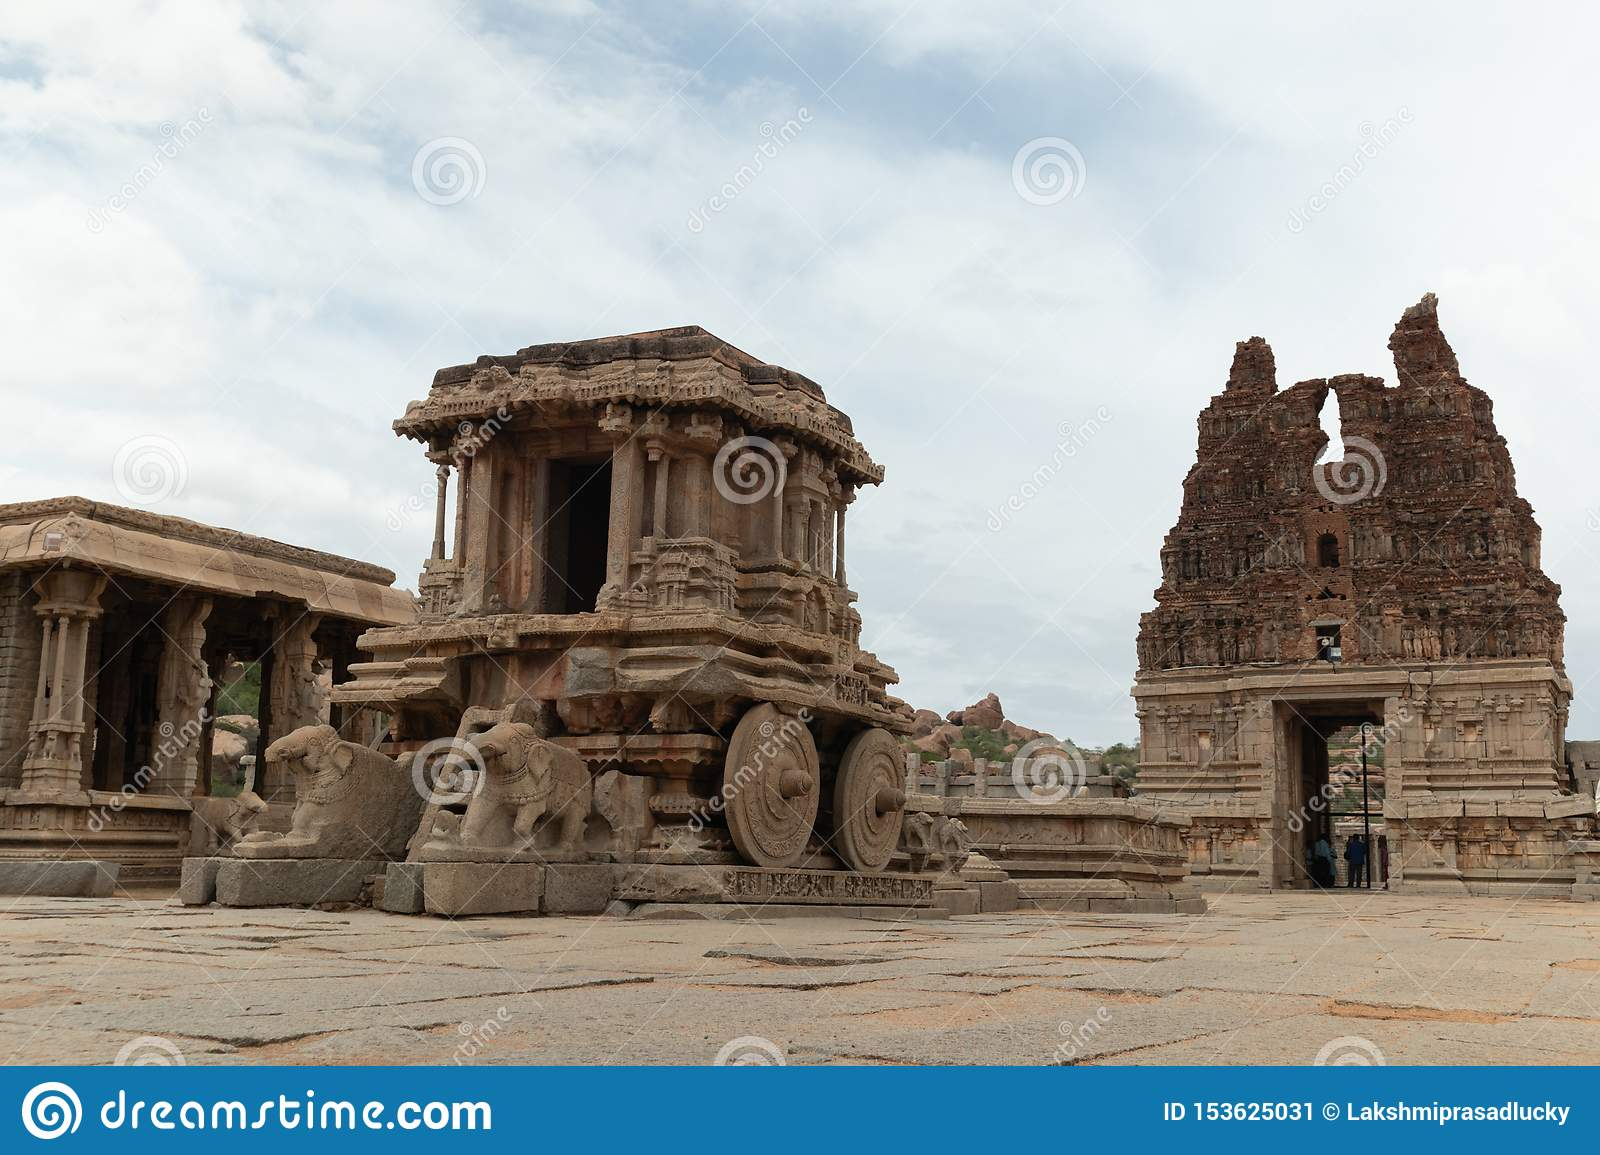 Stone chariot in courtyard of Vittala Temple in Hampi, Karnataka, India